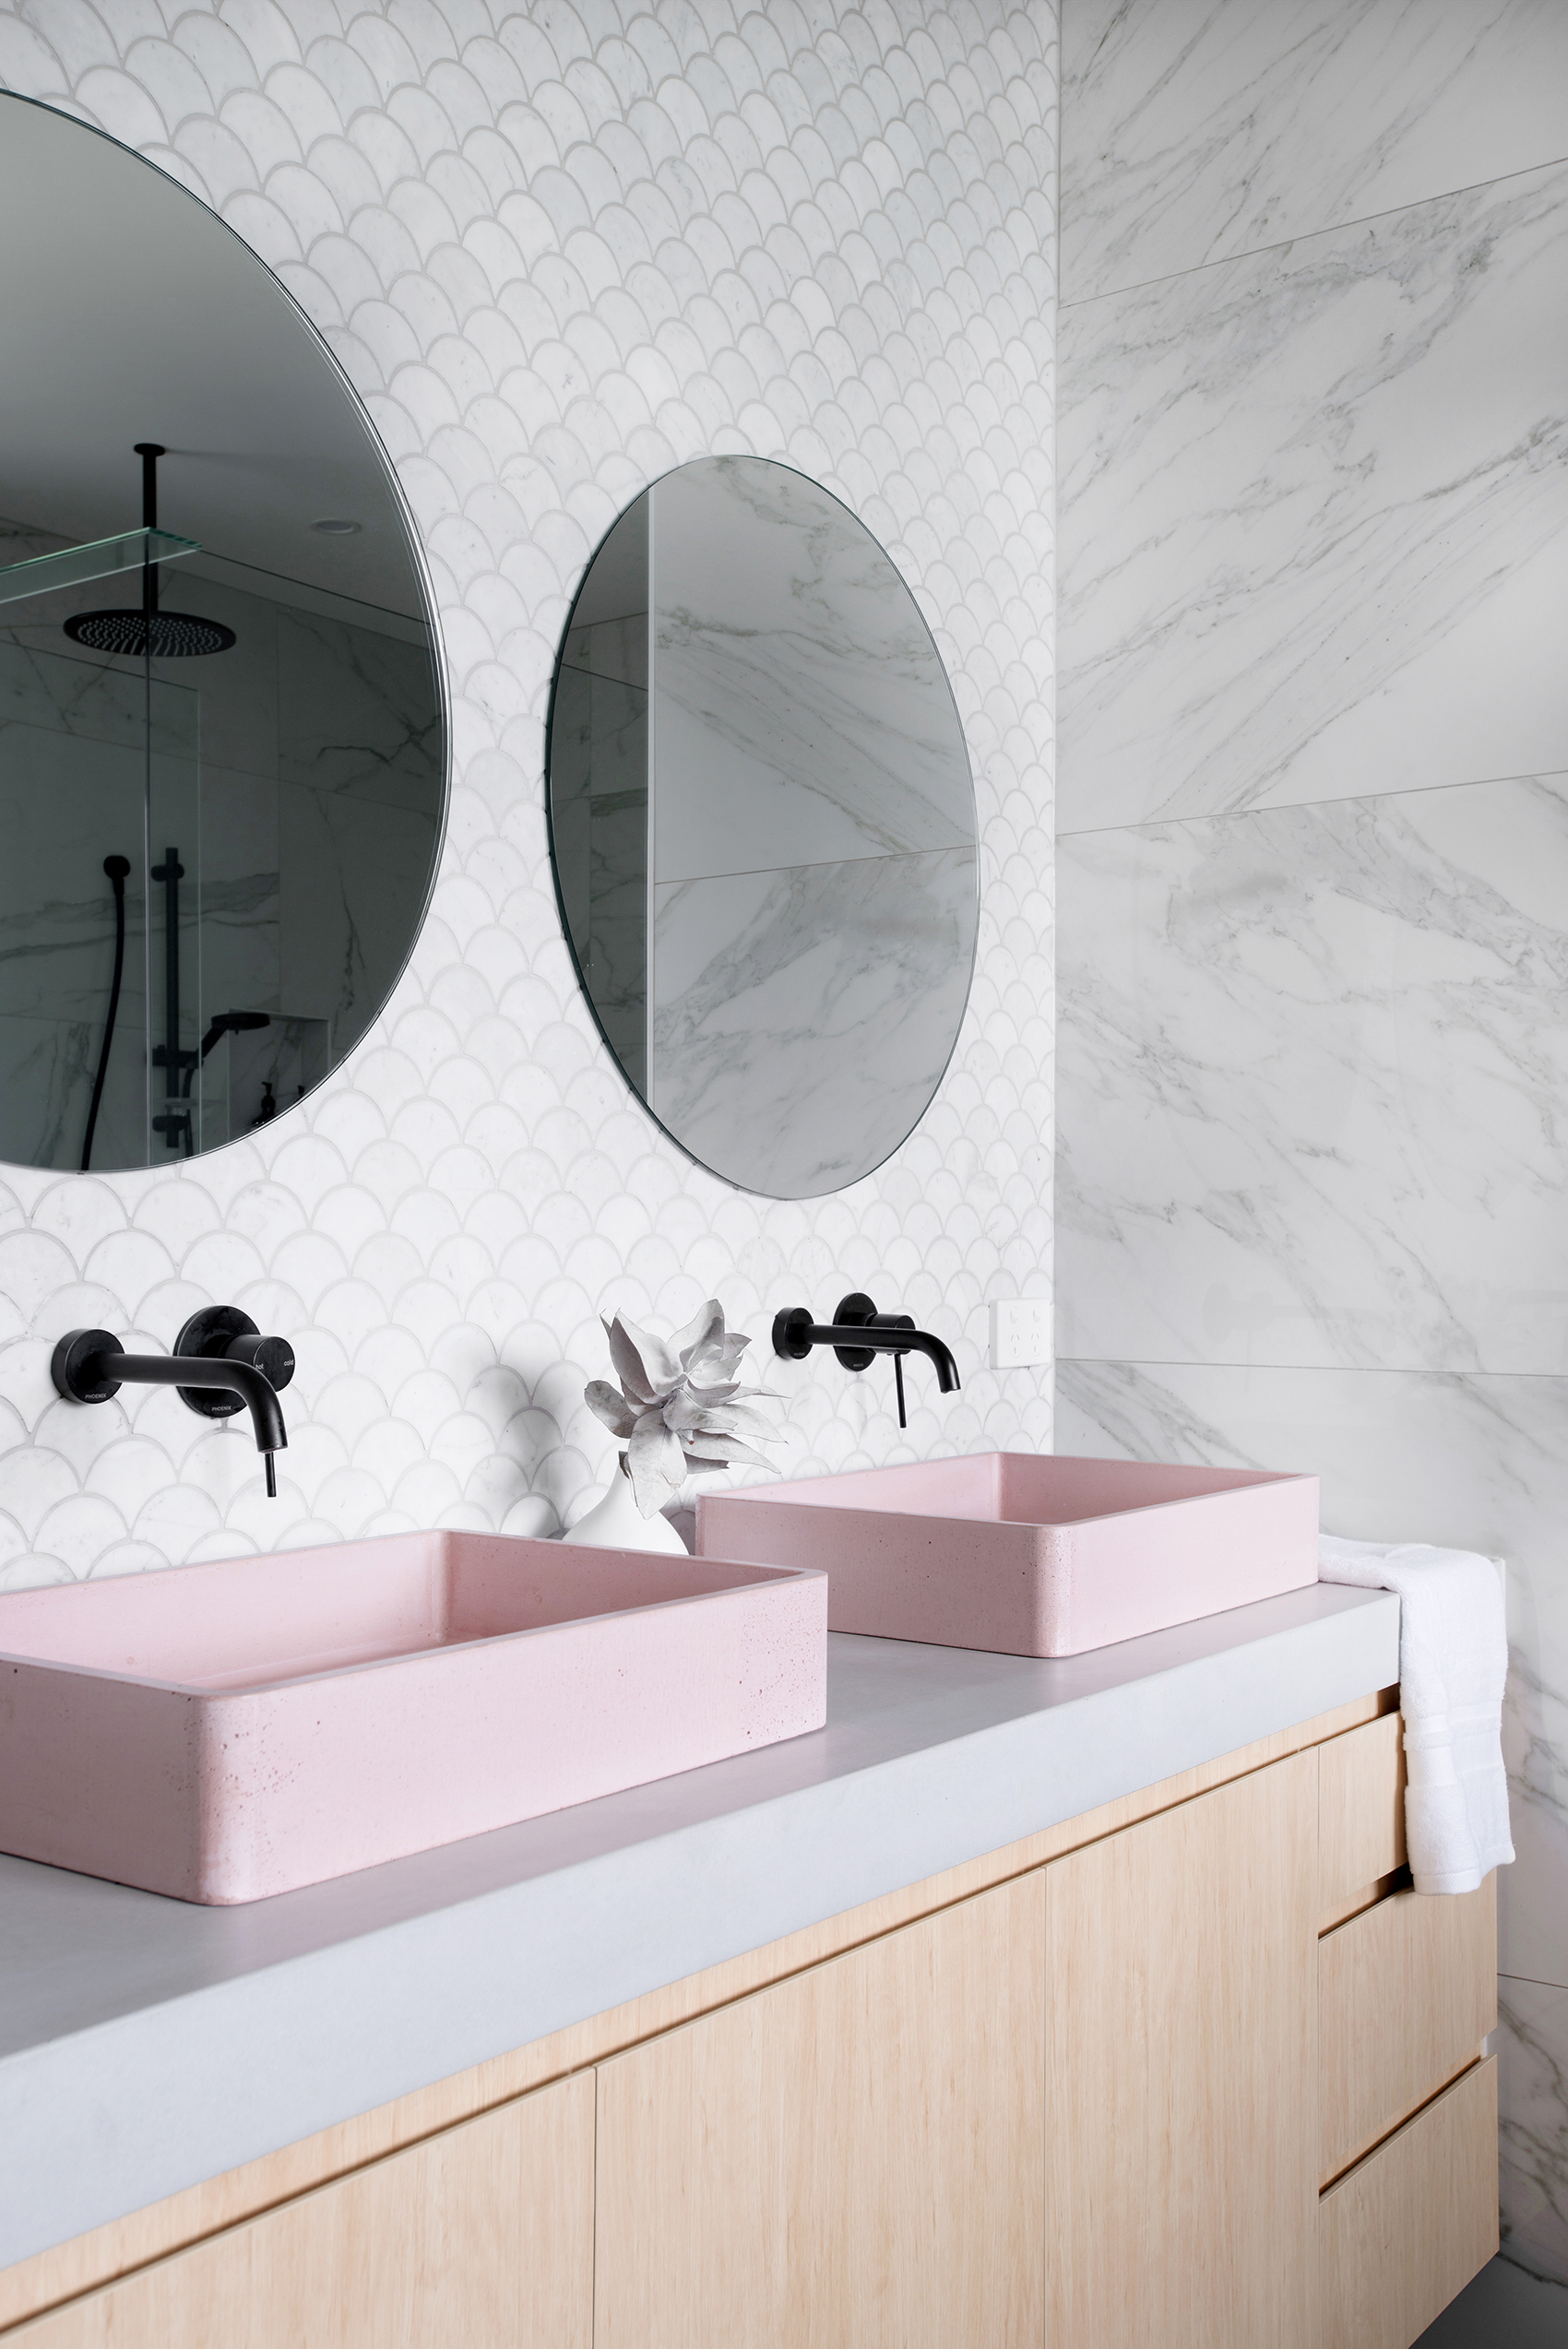 PINK IS BACK! - The colour pink is back in a huge way, dubbed 'Millennial Pink', the blush pink shade is popping up everywhere, from painted walls, to soft furnishings and yes, even in bathrooms. Go bold with pink tiles, or for a safer pop of colour, opt for a pink concrete sink. If you tire of the colour in a few years, simply replace (much cheaper than replacing tiles!).